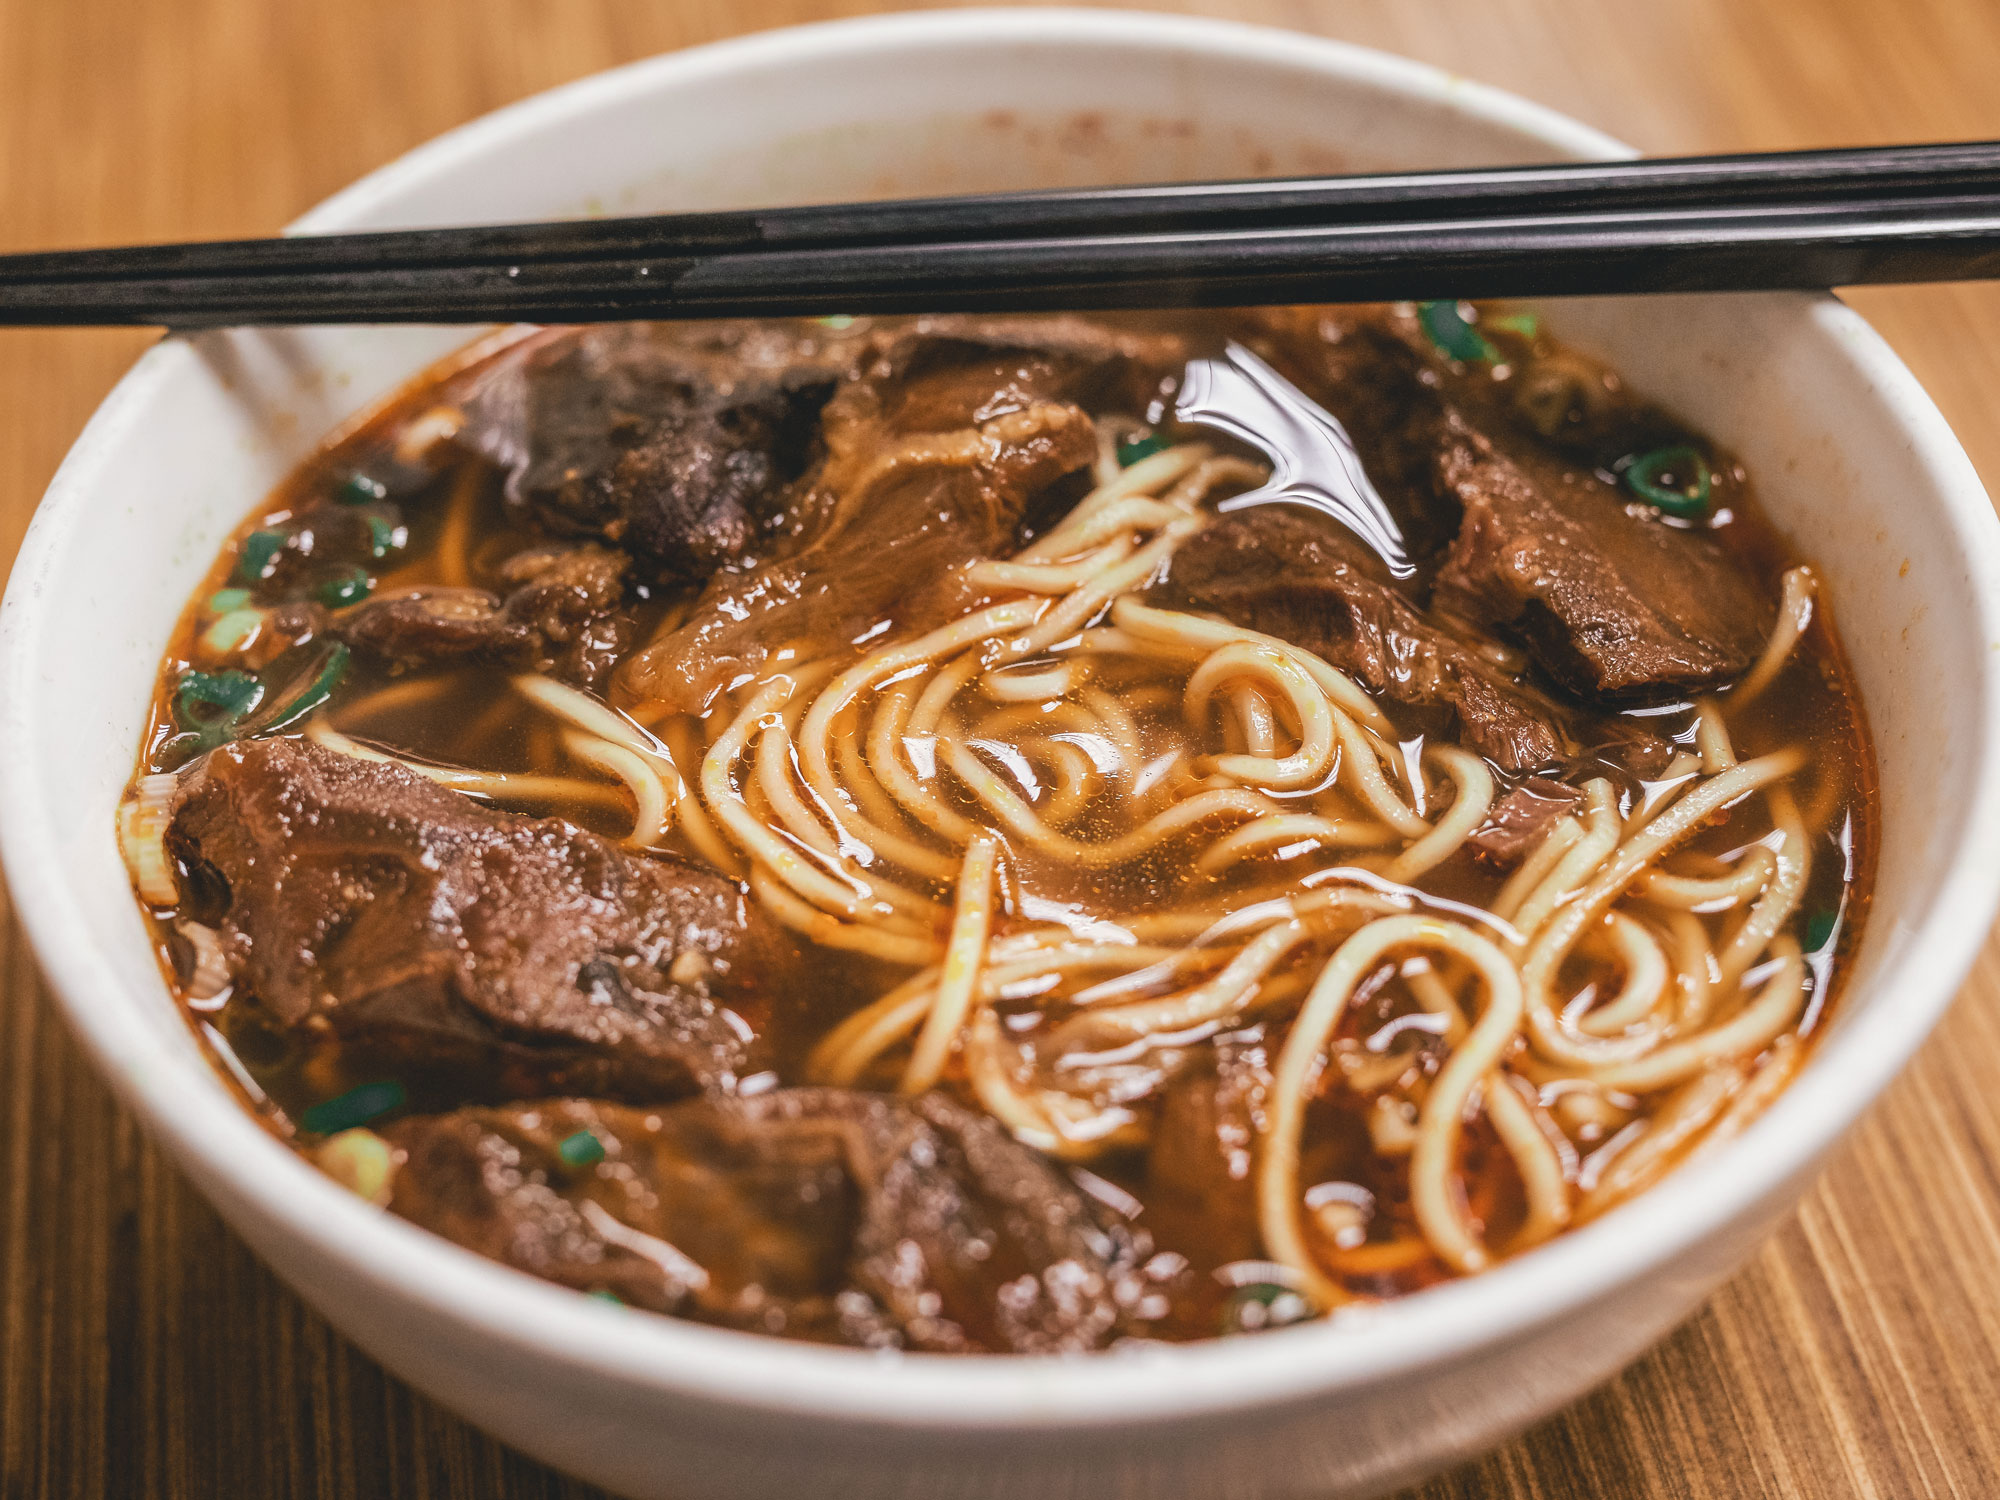 Photo of beef and noodles with chopsticks in a white bowl.